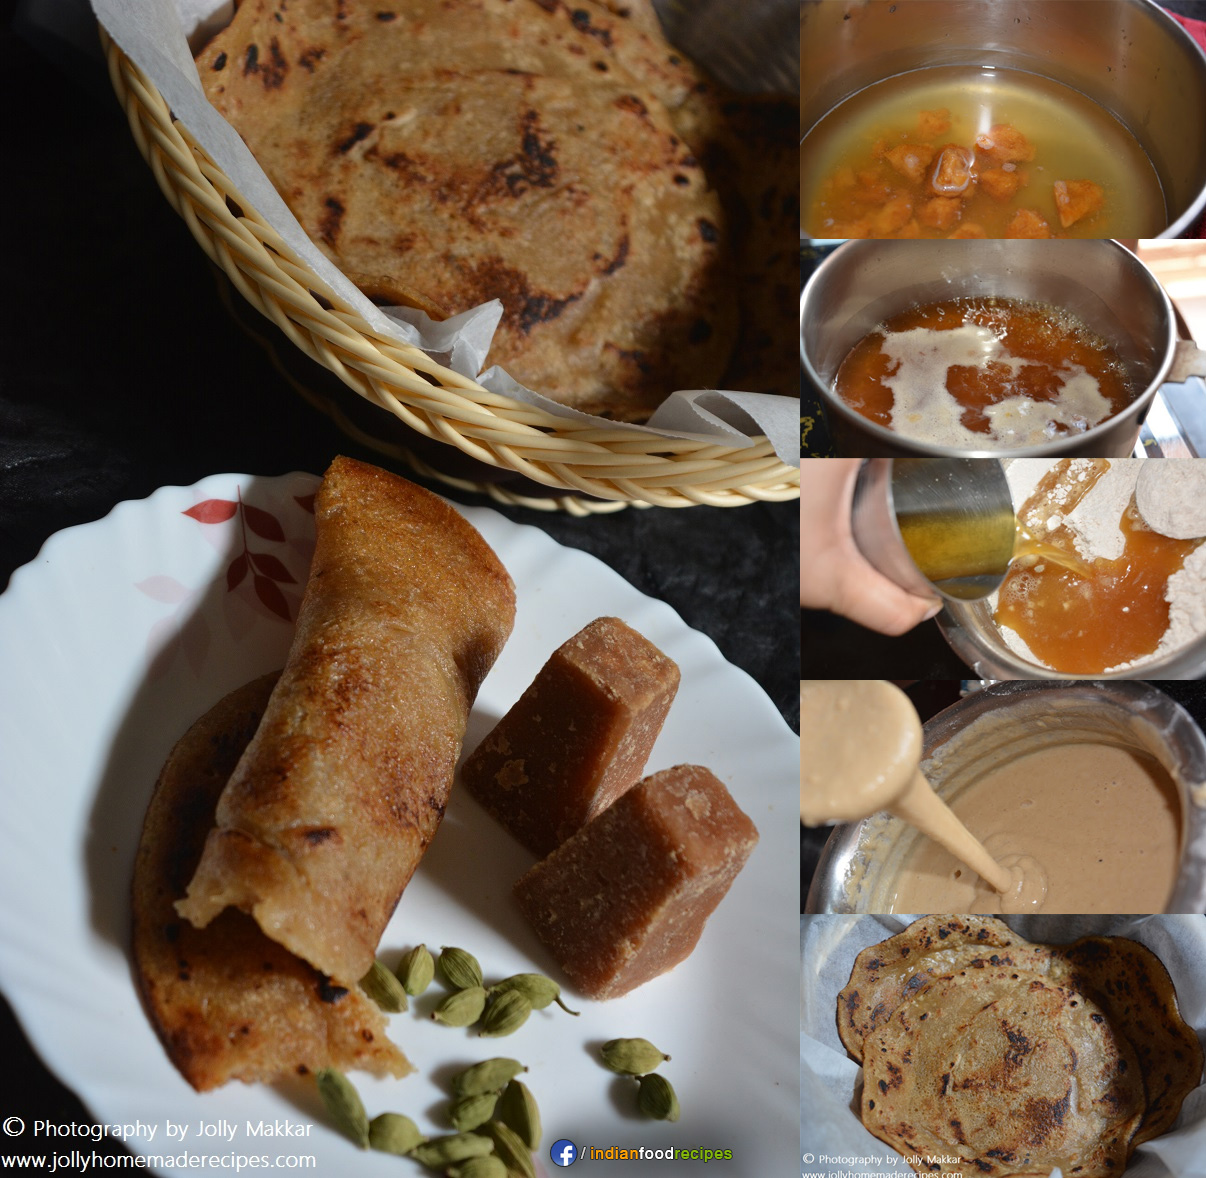 Whole Wheat Jaggery Pancake recipe step by step